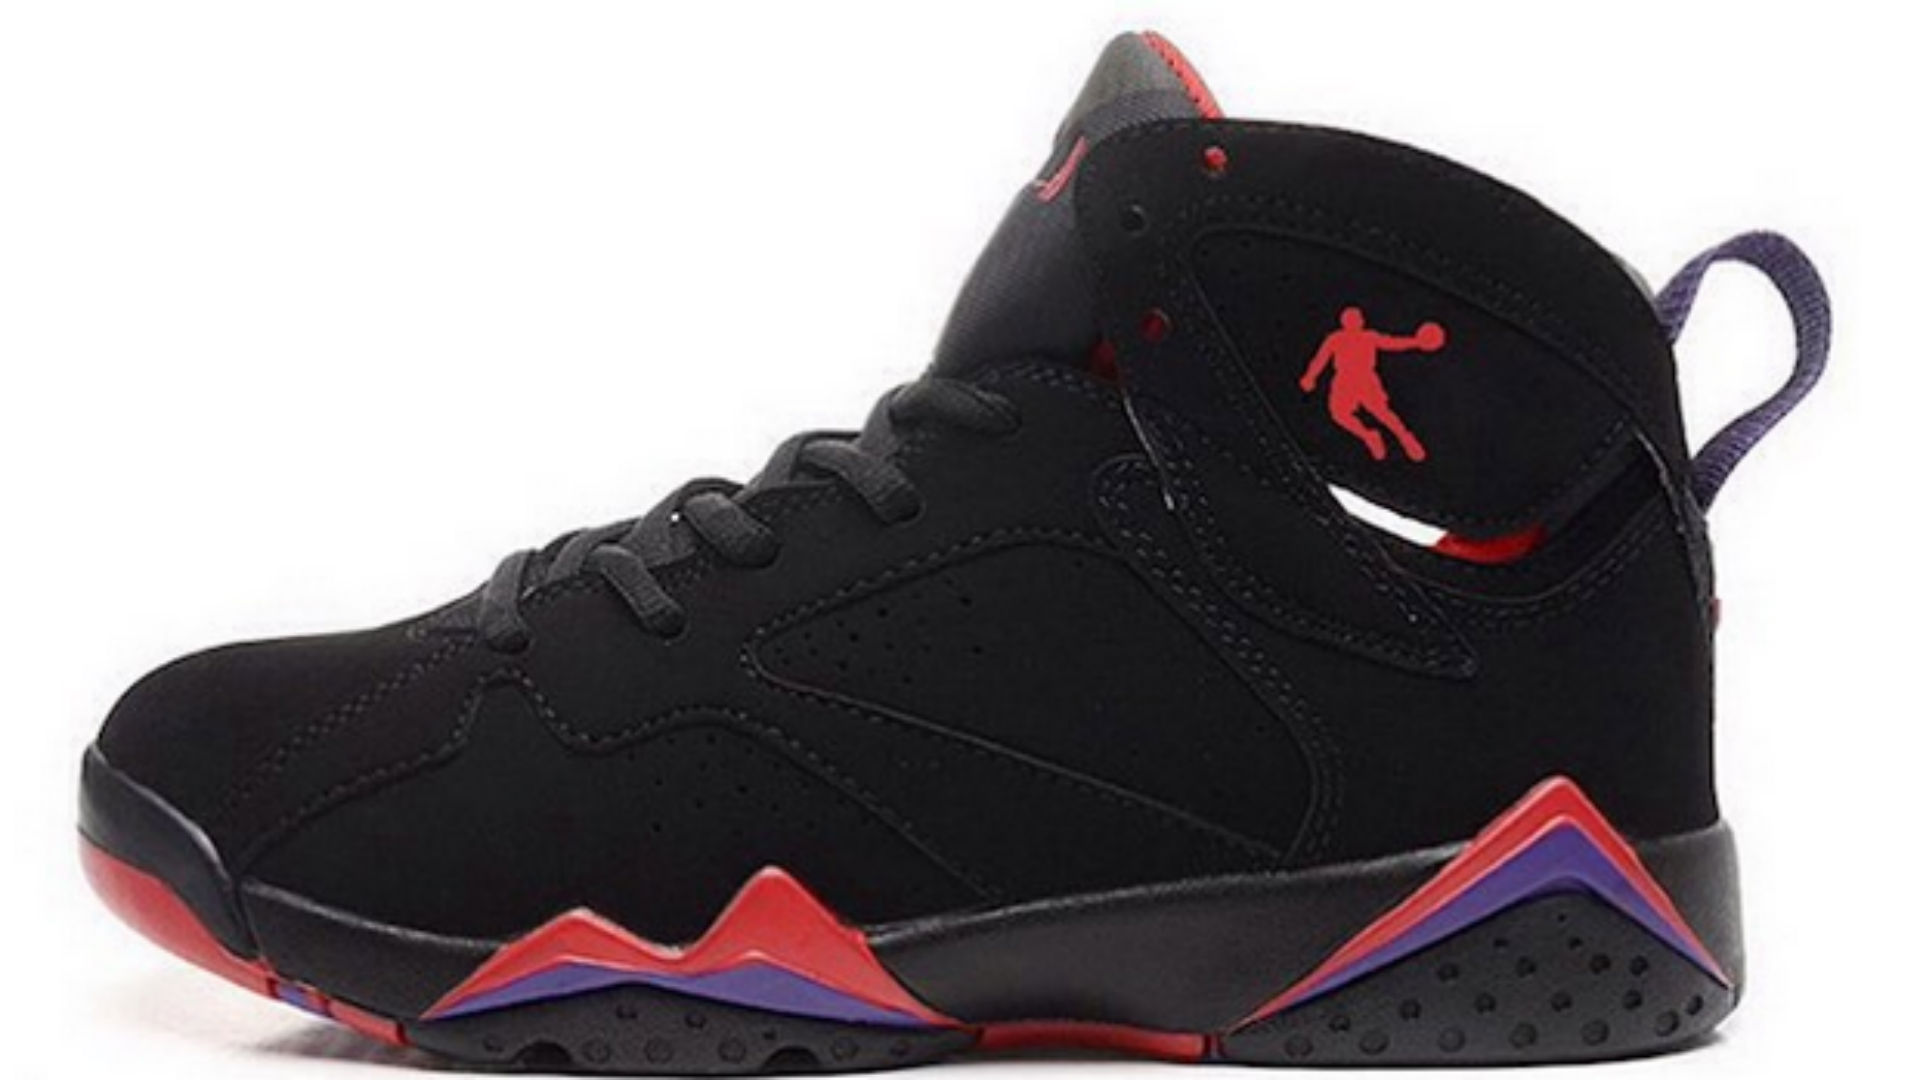 on sale 980f1 15847 A Chinese company is legally selling fake Air Jordans ...